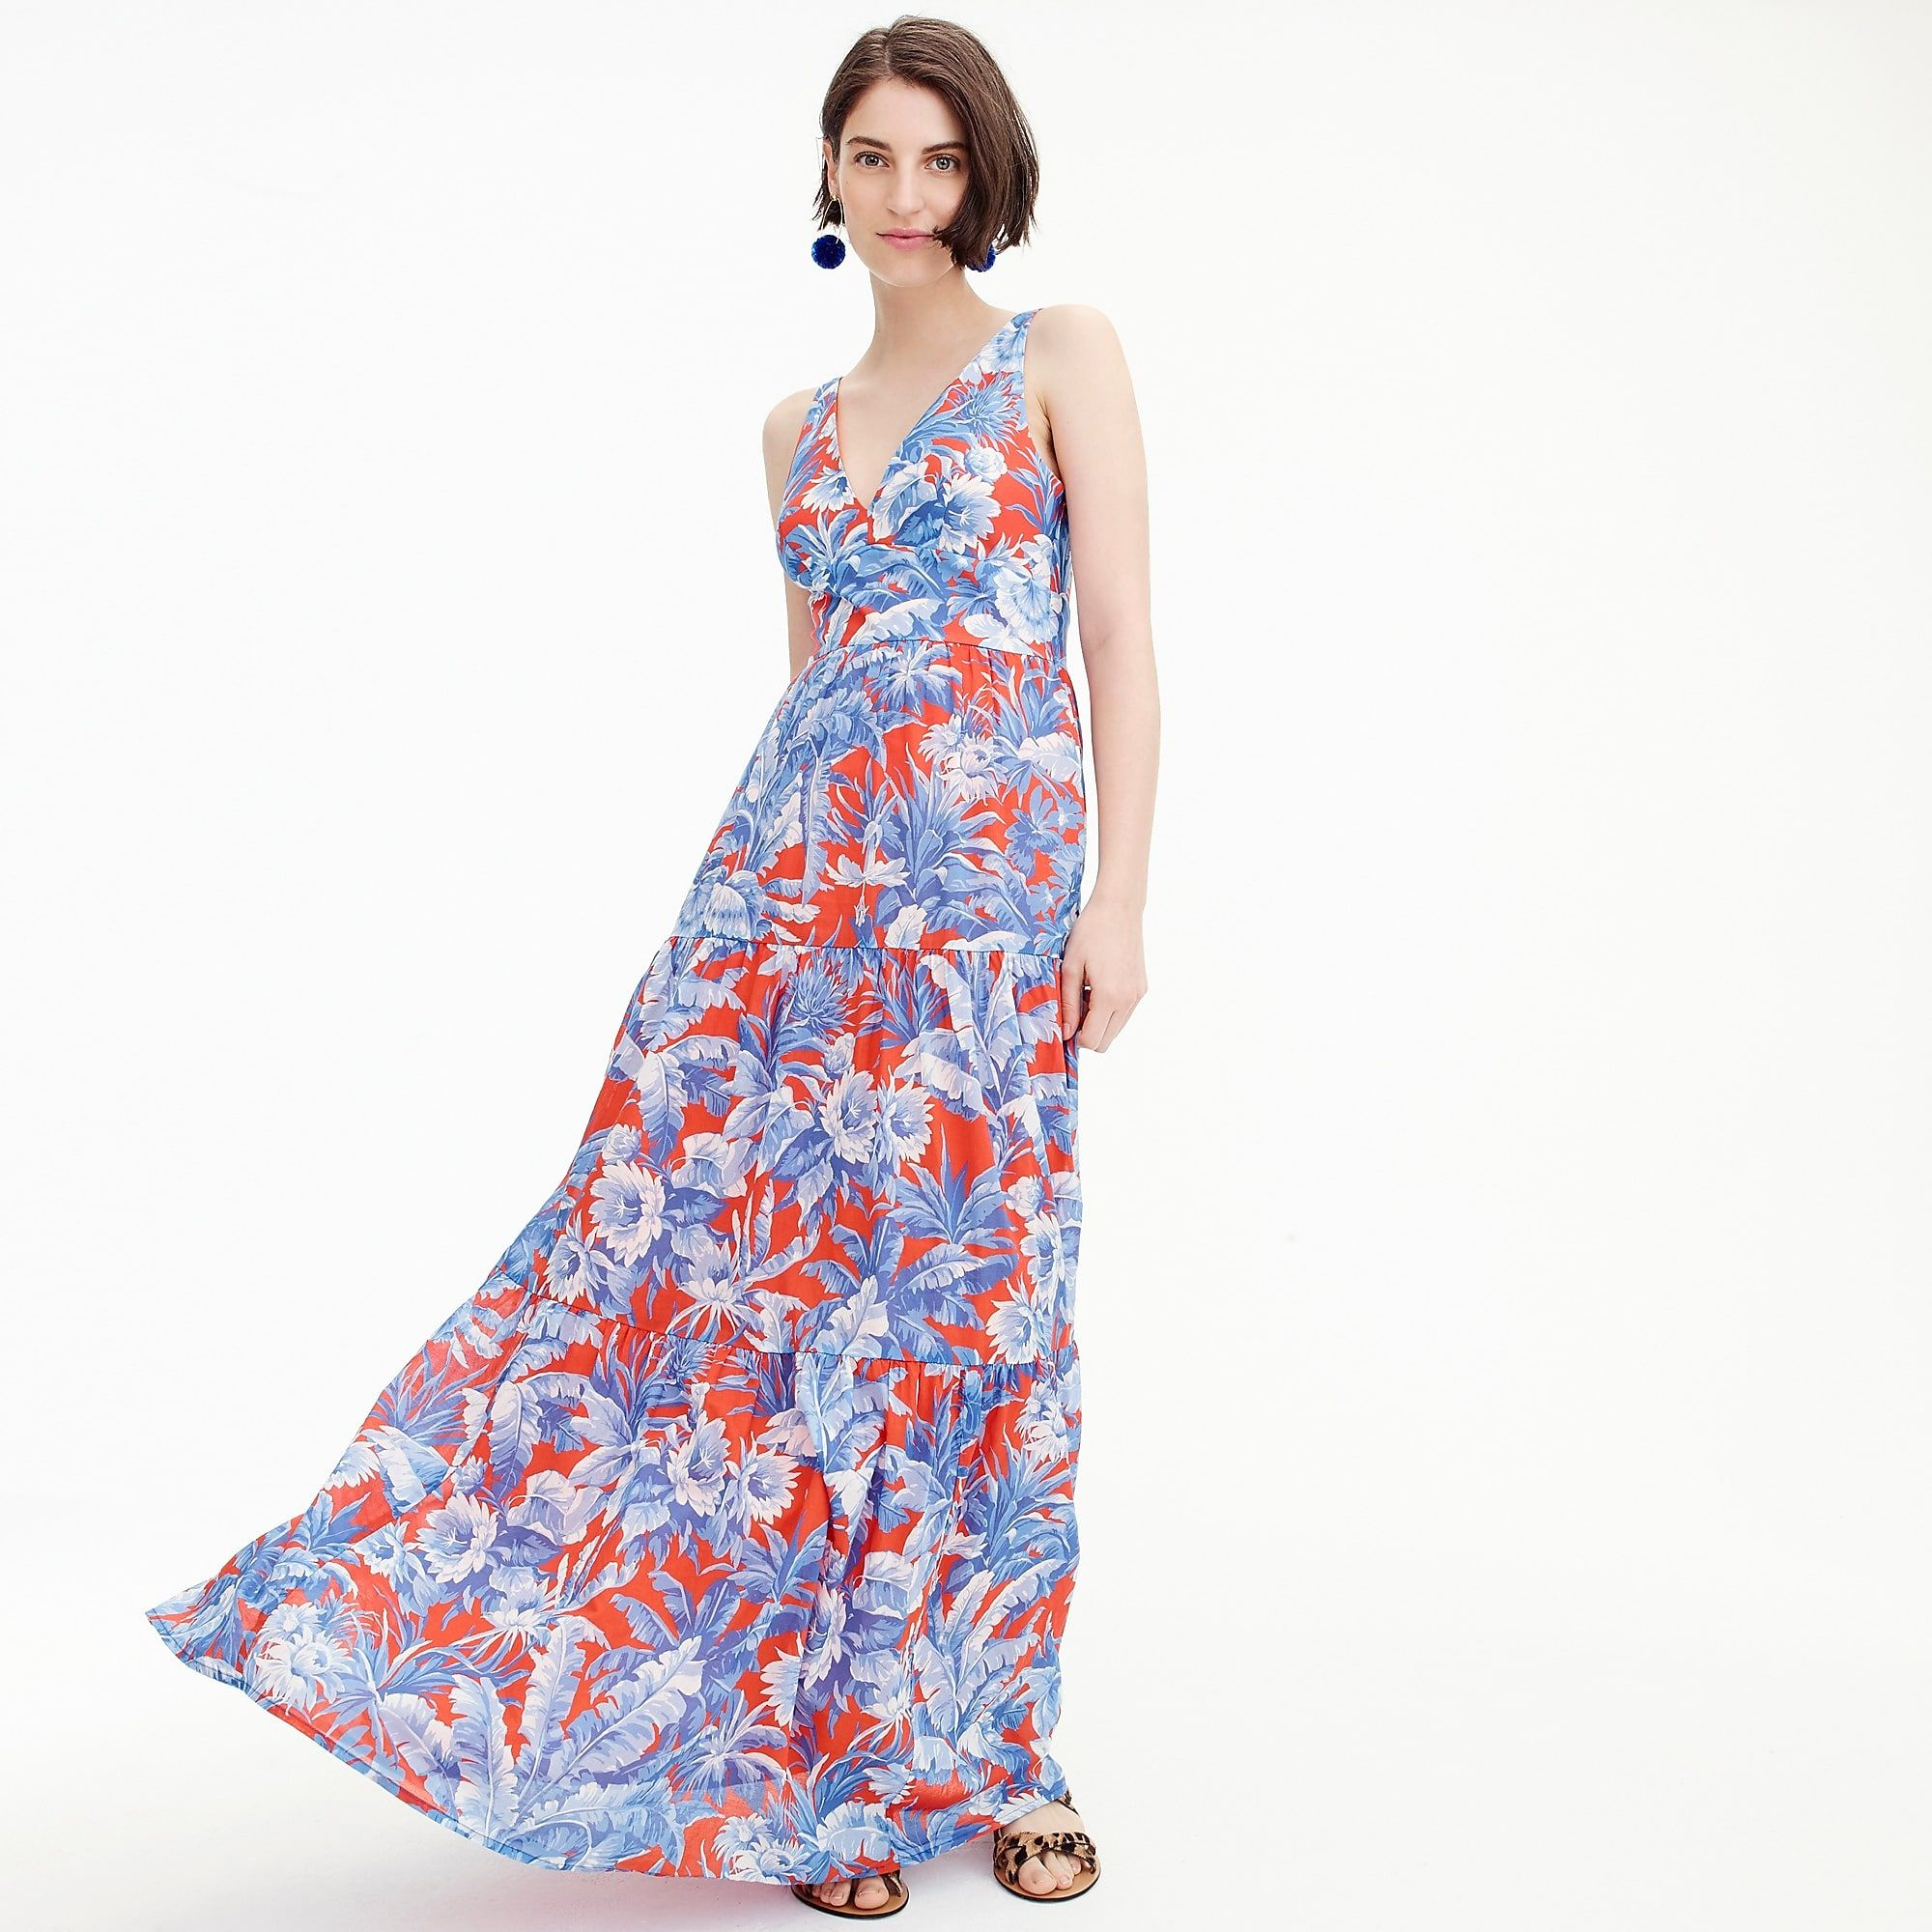 Floral Maxi Dress Great For The Inverted Triangle Body Type Or Rectangle Body Type Maxi Dress Casual Dresses For Women Dresses [ 2000 x 2000 Pixel ]